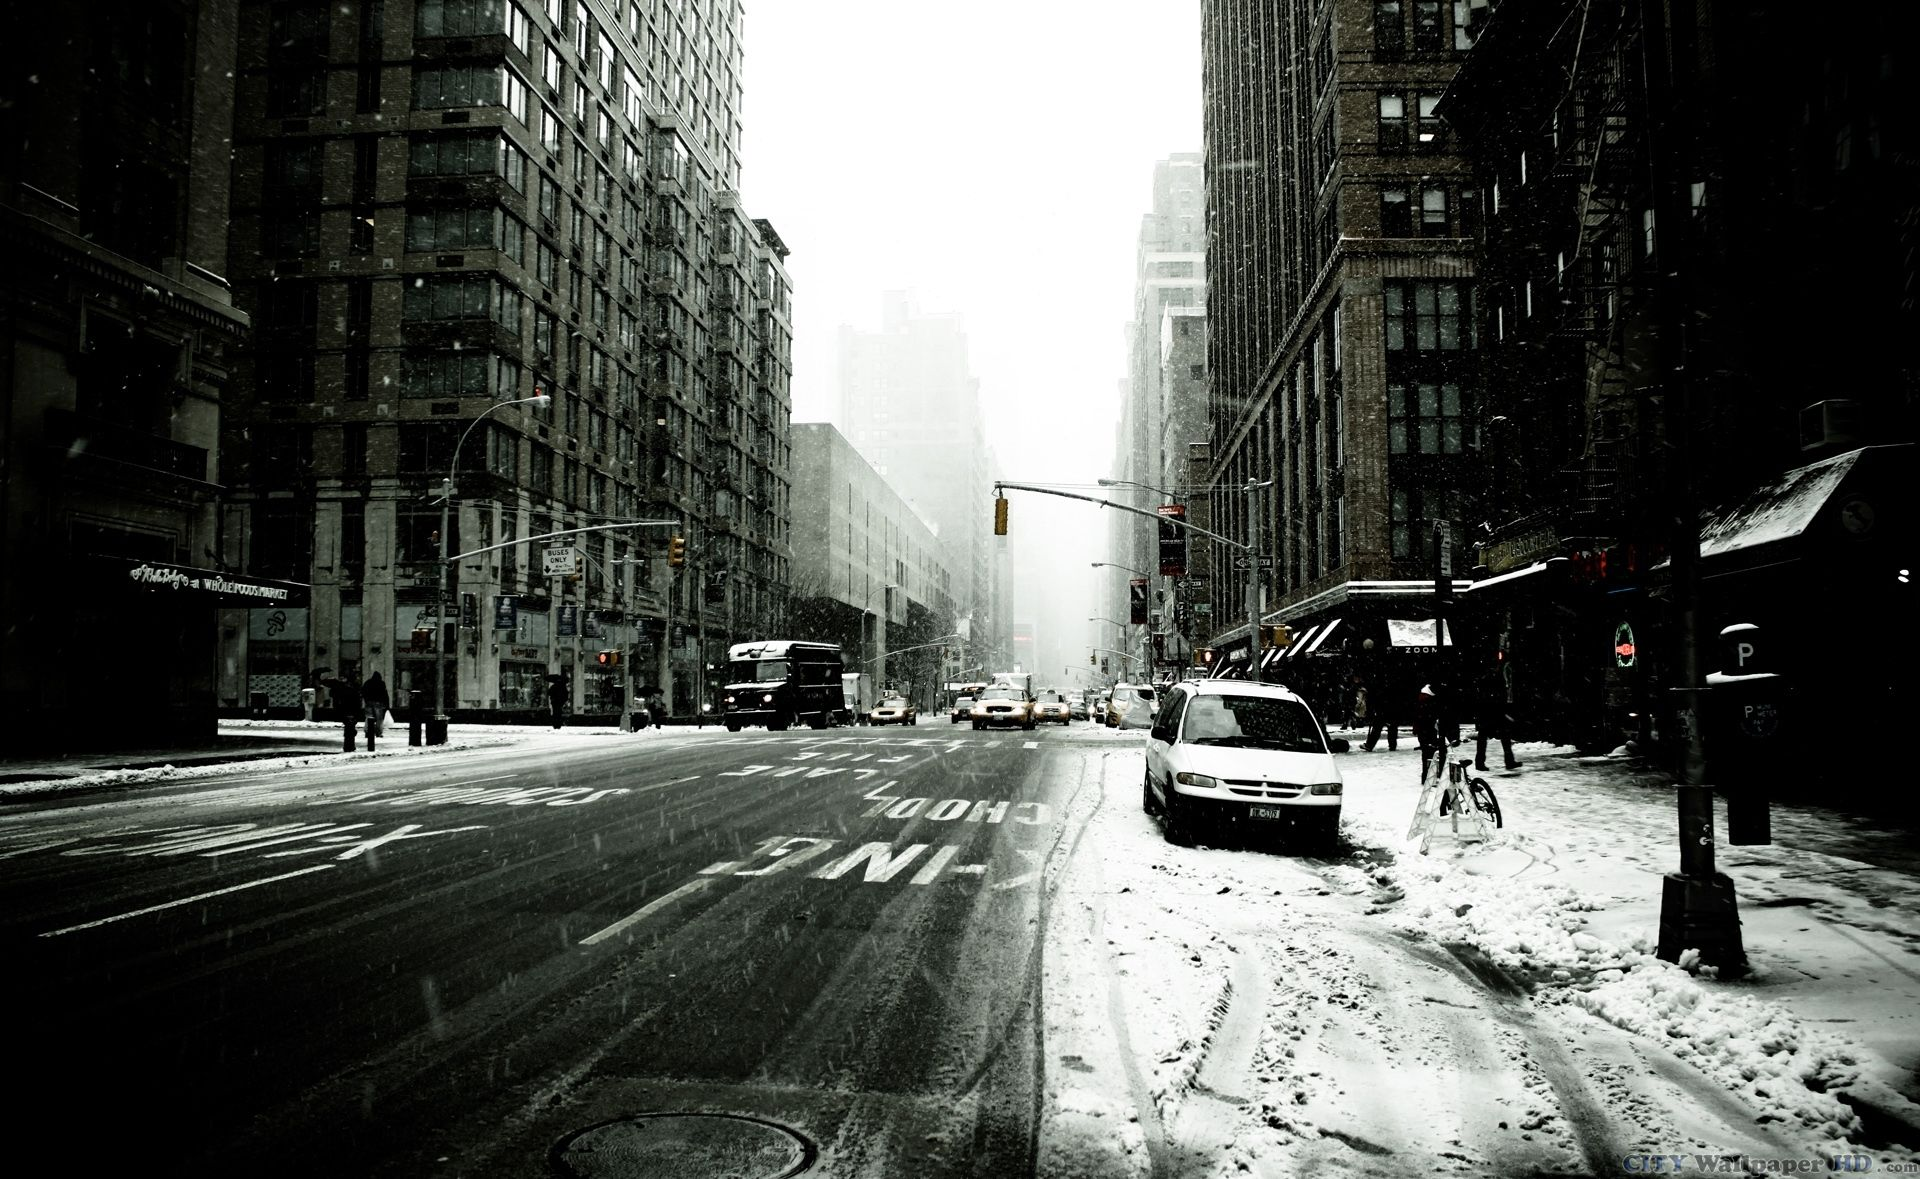 48 New York City Winter Wallpaper On Wallpapersafari